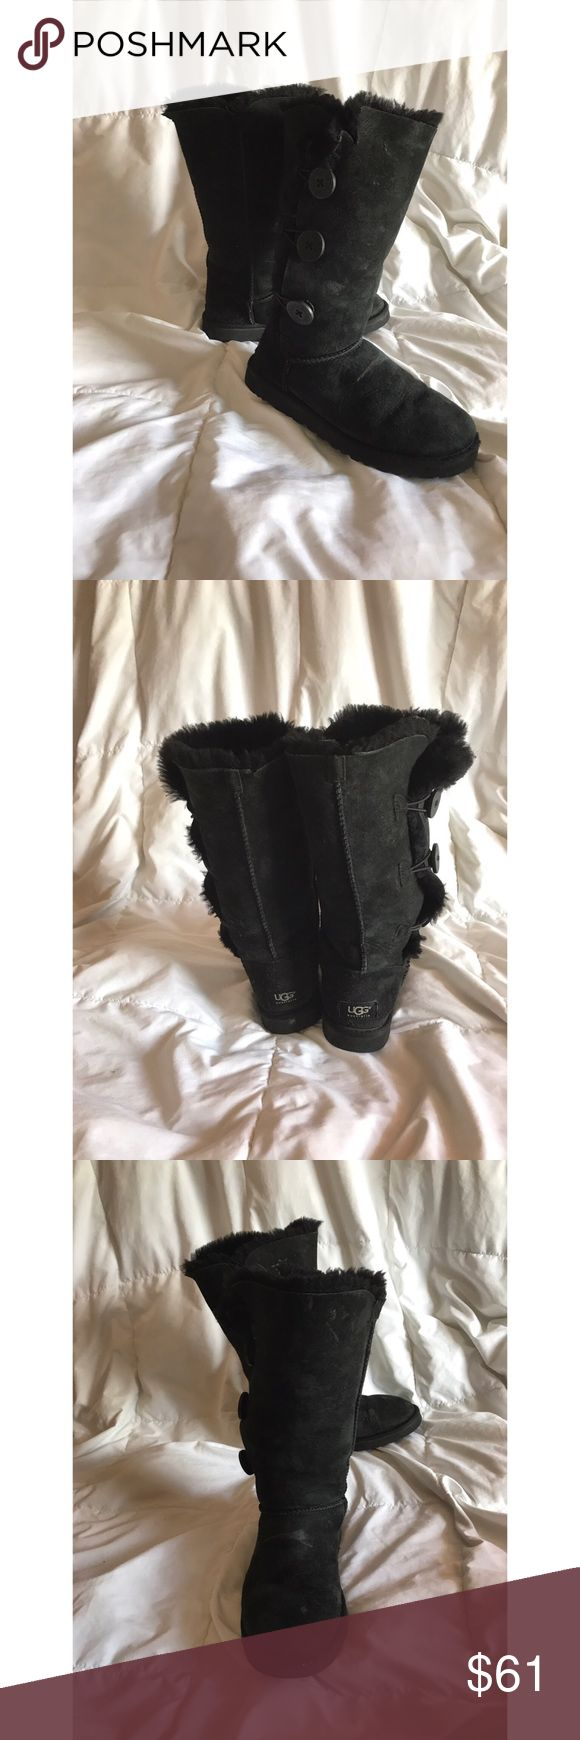 🖤Tall black UGG BOOTS🖤 Authentic black UGG boots size 7. It has a few stains and a mini rip but other than that it looks great UGG Shoes Winter & Rain Boots